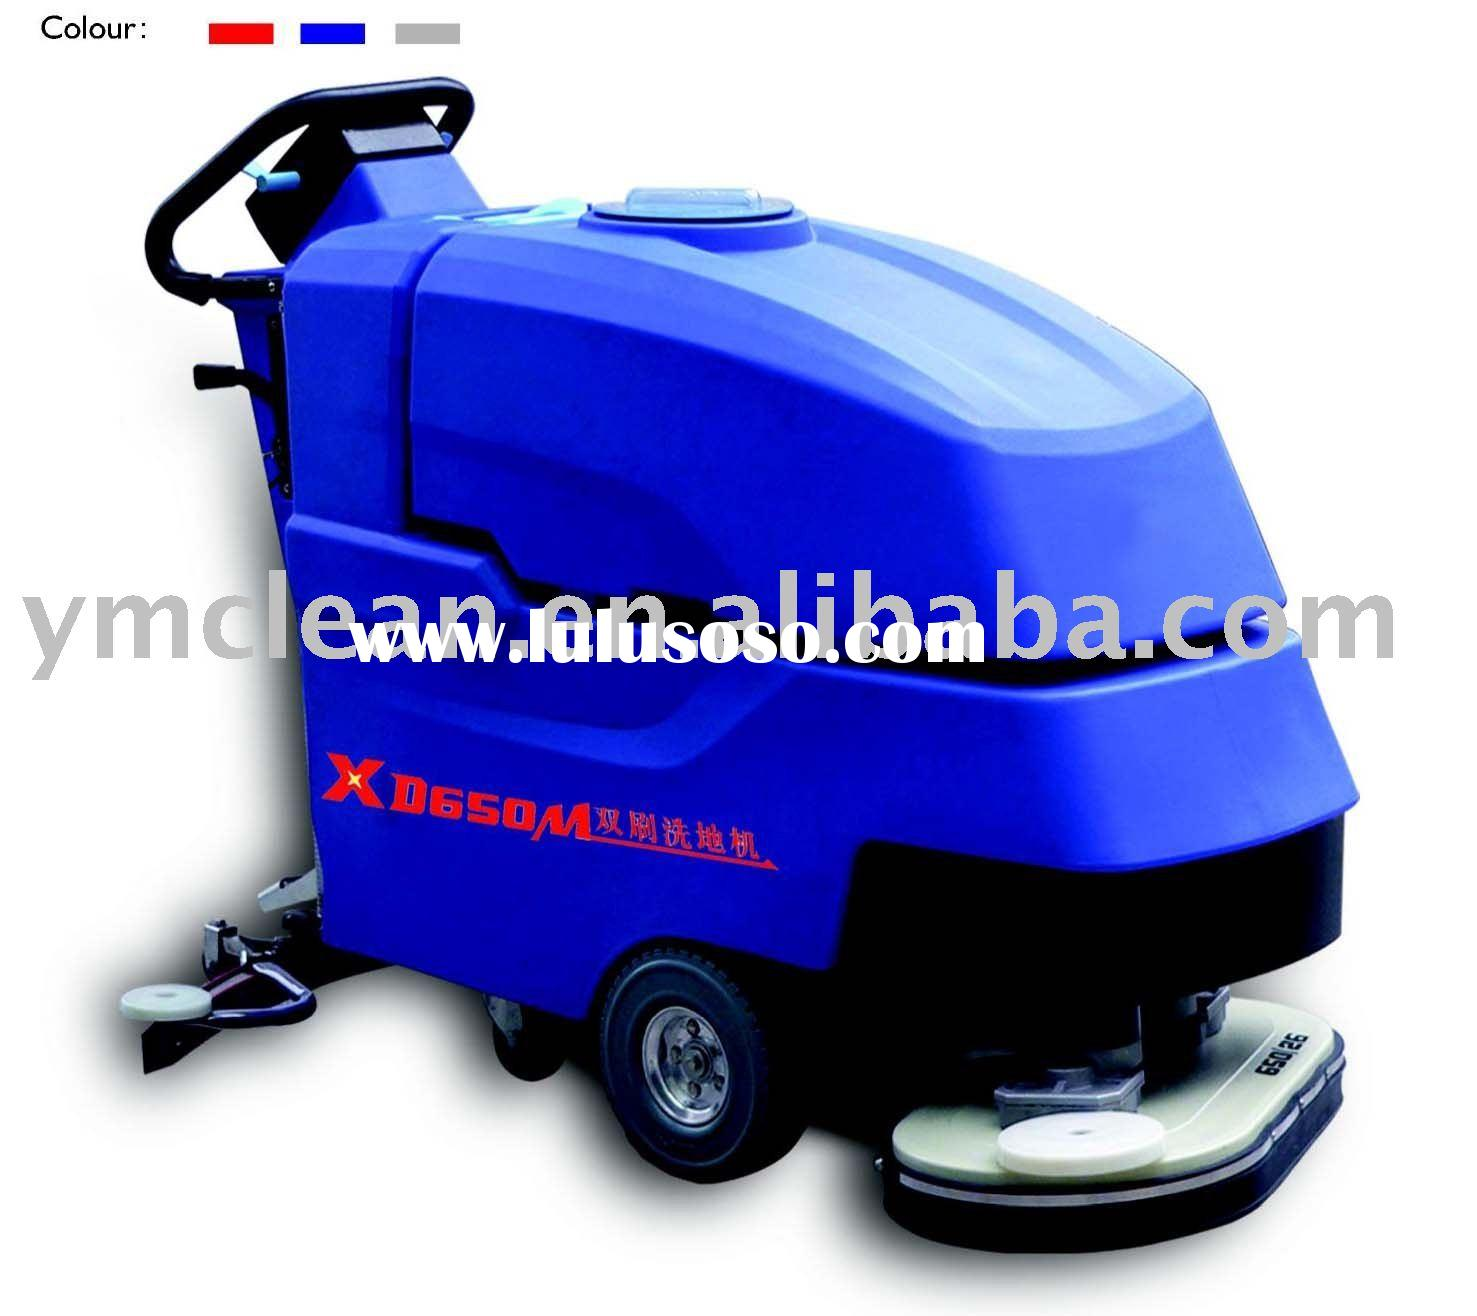 XD760A Auto Floor Cleaning Machine with Dual Brush